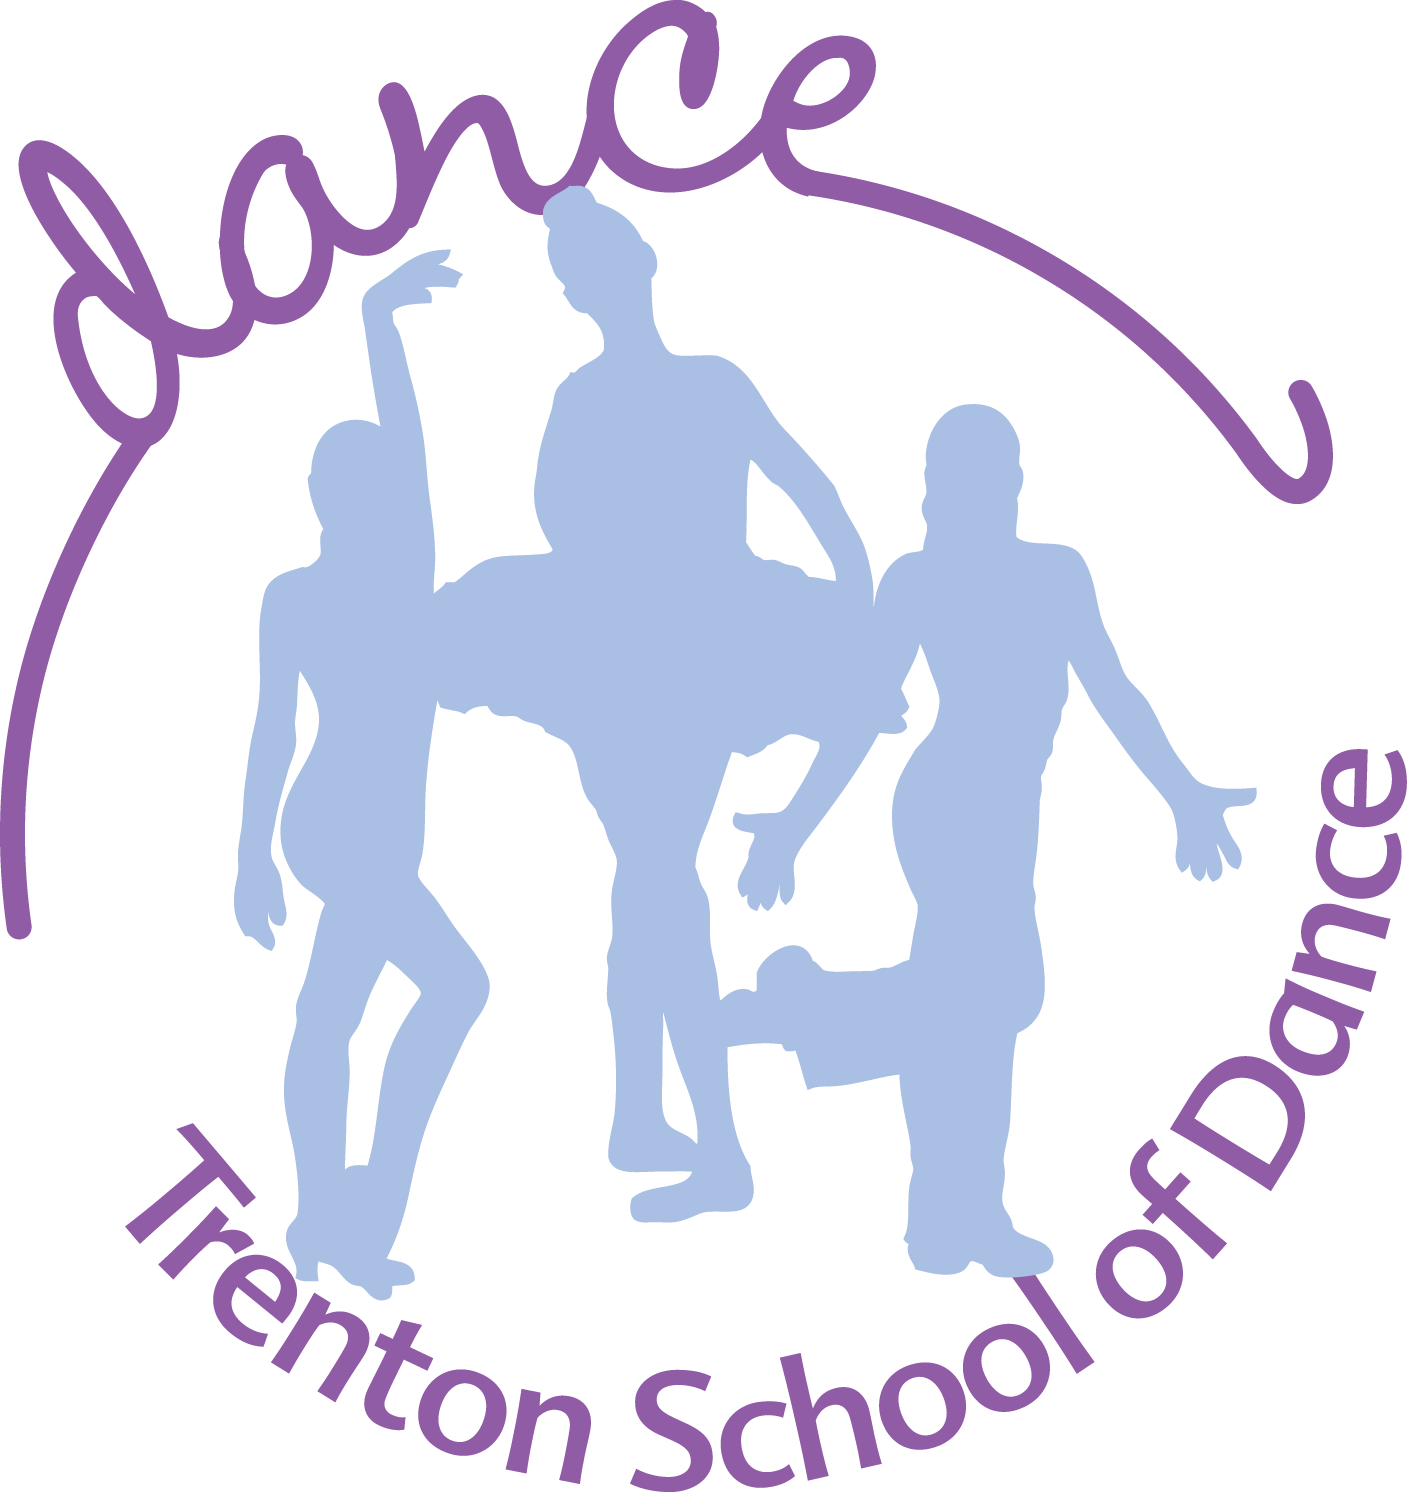 Trenton School of Dance | Premier Downriver Dance Studio